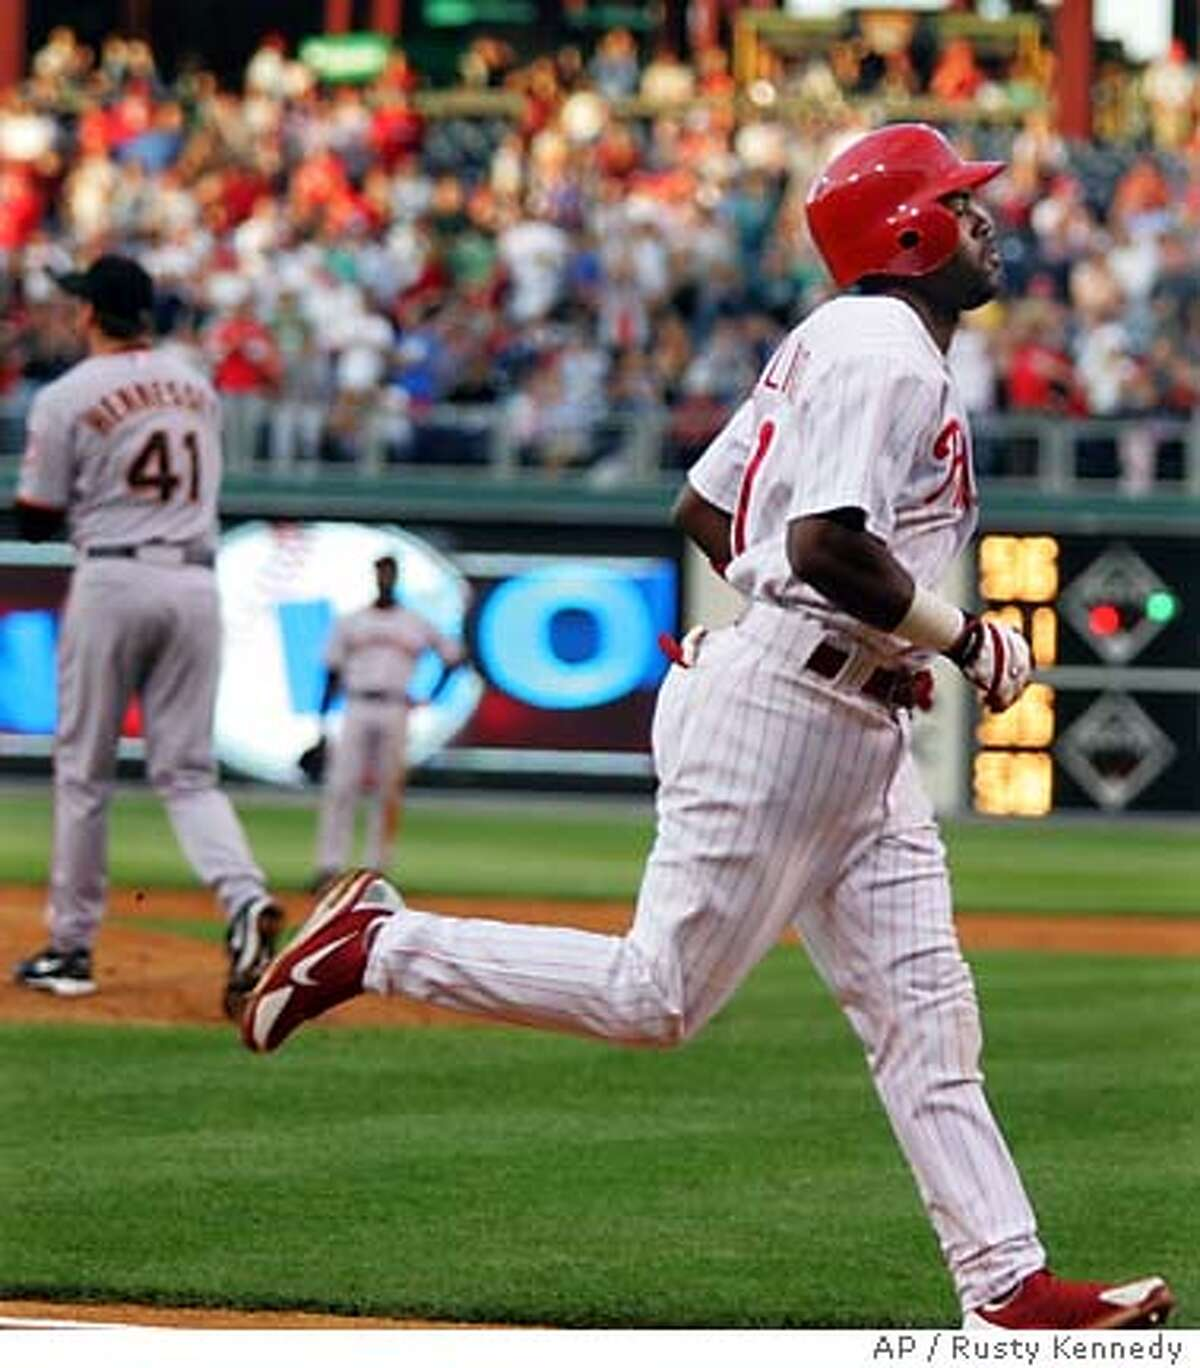 Philadelphia Phillies Jimmy Rollins rounds the bases after a 2-run home run off San Francisco Giants Brad Hennessey in the second inning Thursday,June 2, 2005 in Philadelphia. (AP Photo/Rusty Kennedy)